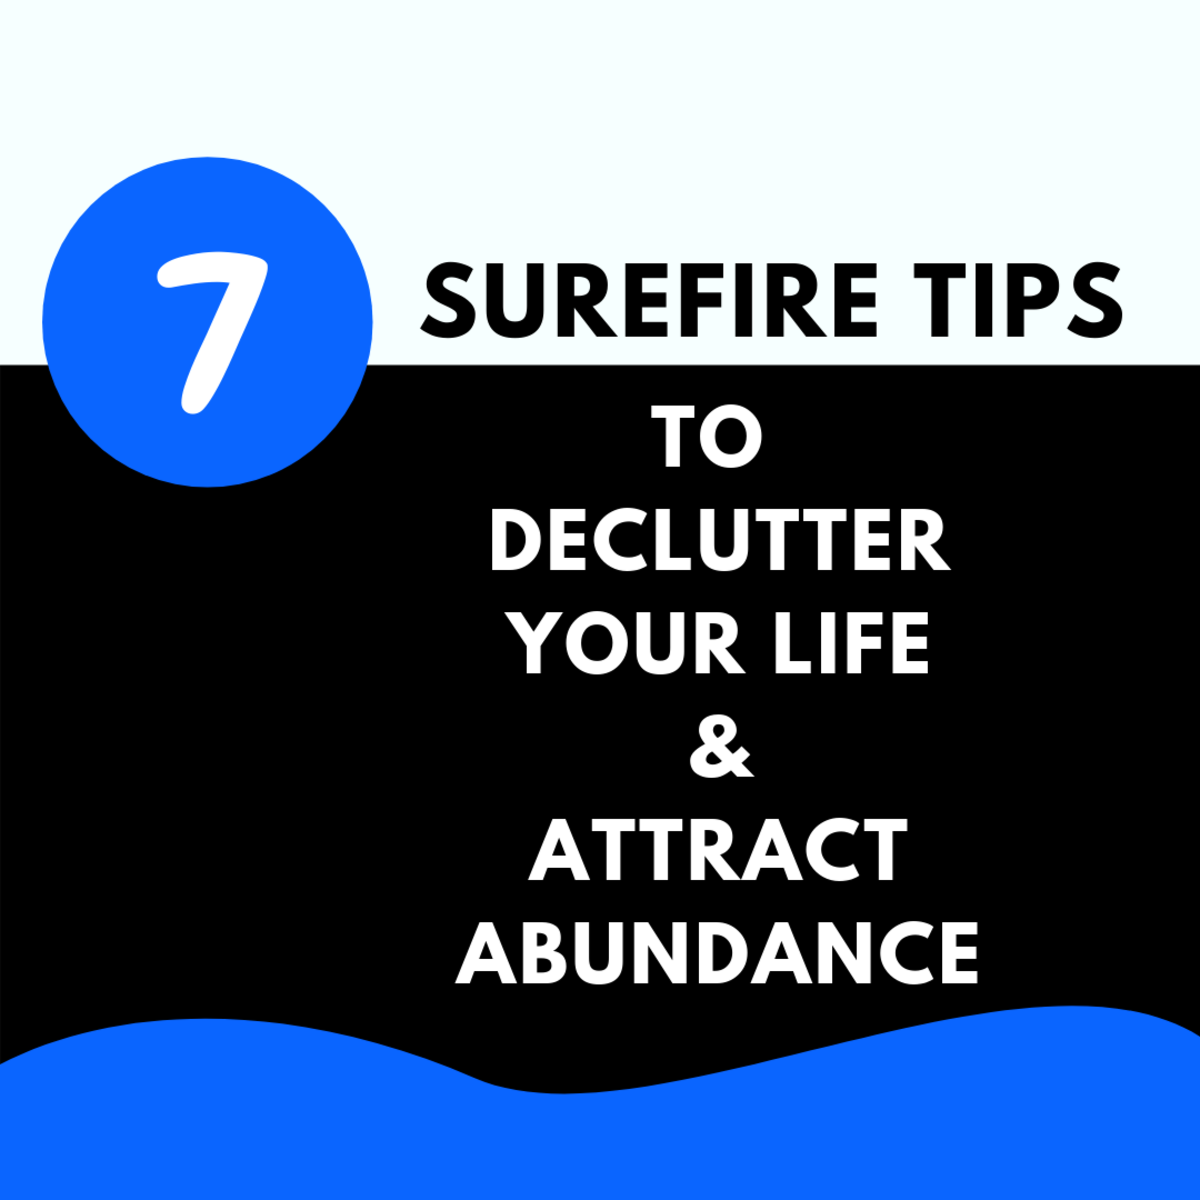 7 Surefire Tips to Declutter Your Life and Attract Abundance